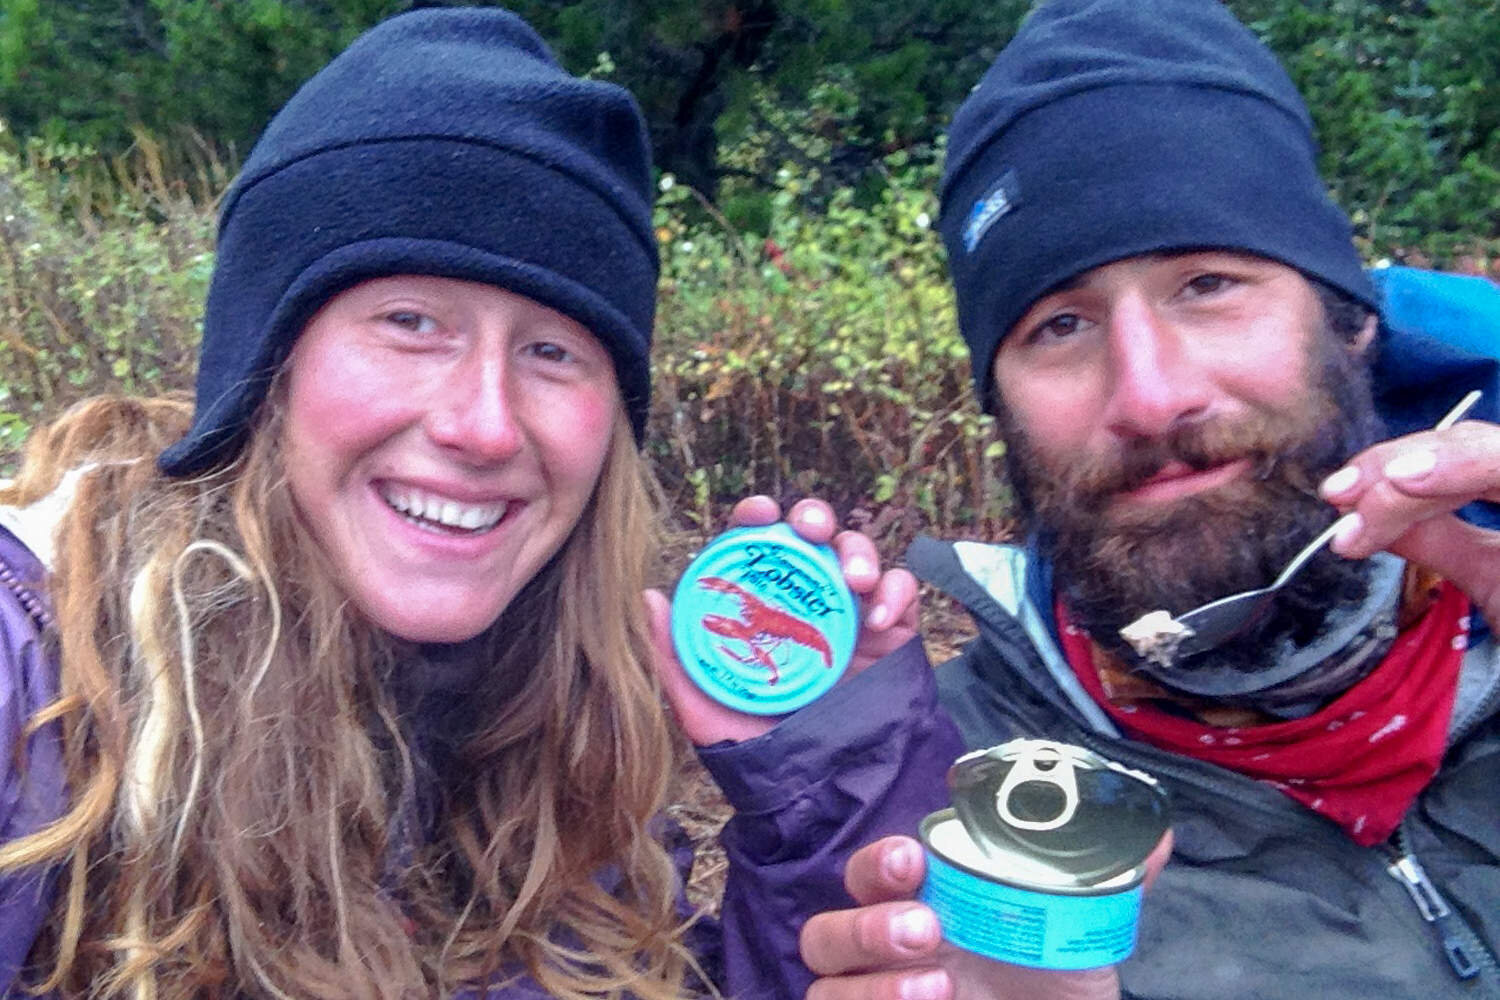 your author, heather, enjoying some canned lobster at the end of her cdt hike!